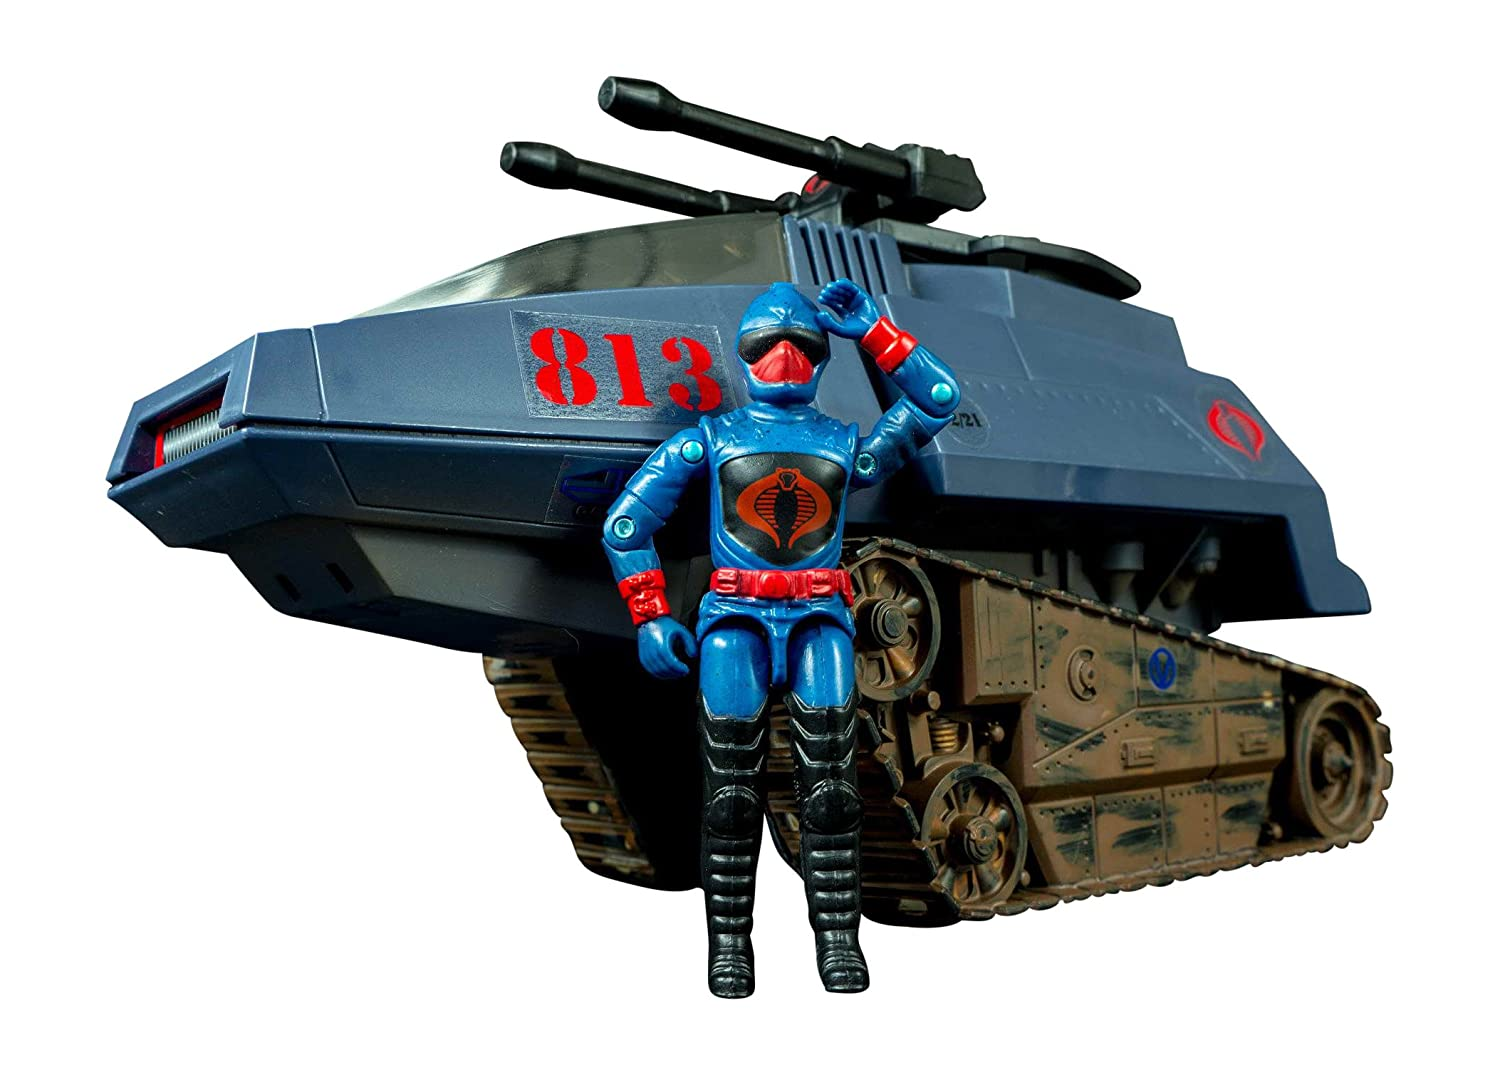 Joe The Real American Hero Collection Tank with Rip It Action Figure Hasbro III HISS Cobra H.I.S.S G.I